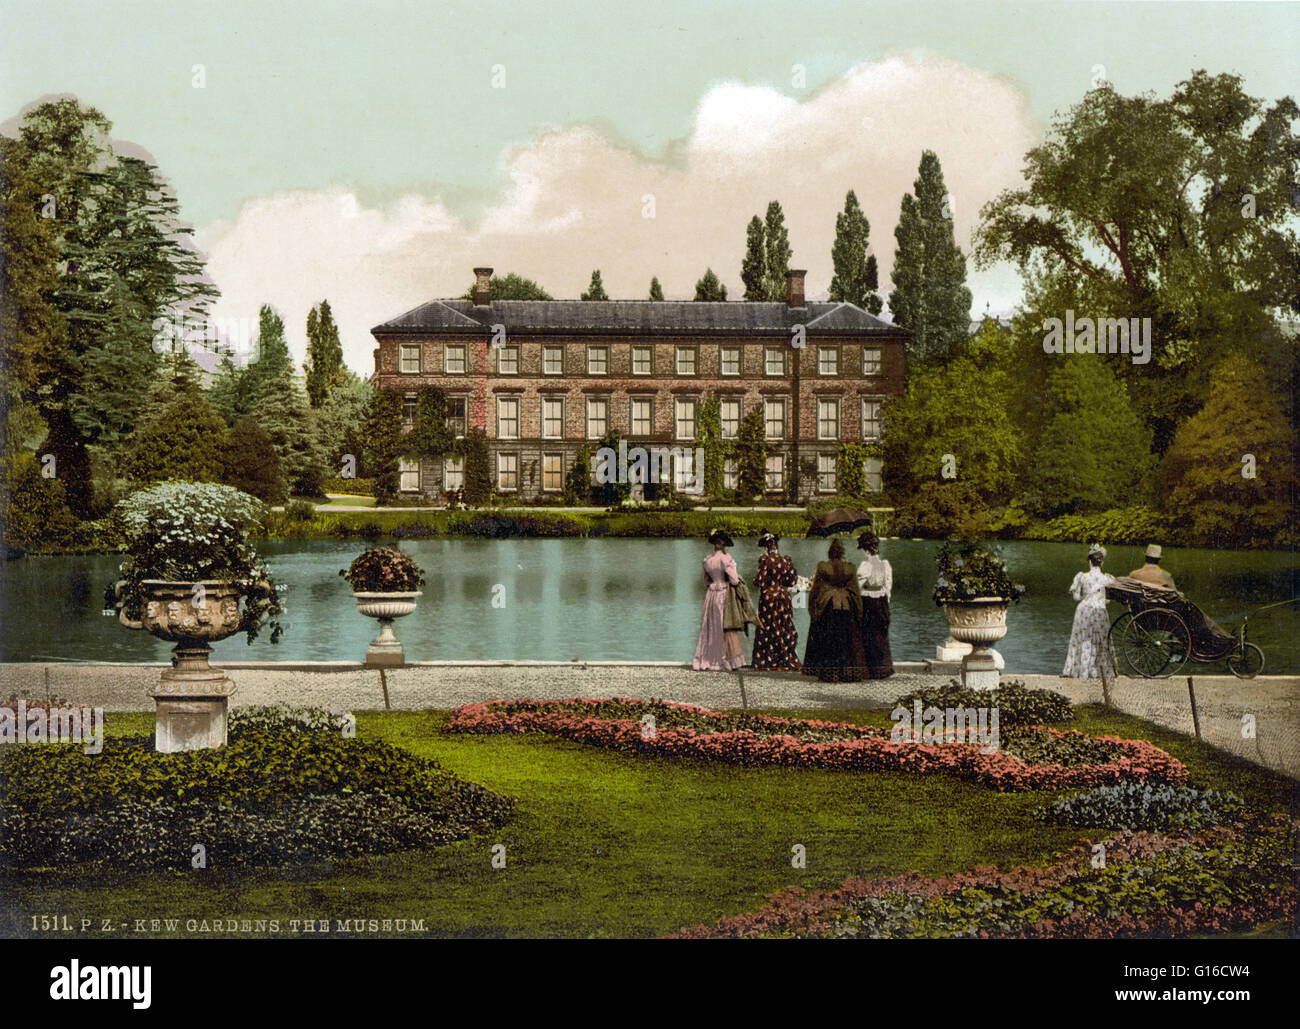 Kew Gardens originated in the exotic garden at Kew Park formed by ...